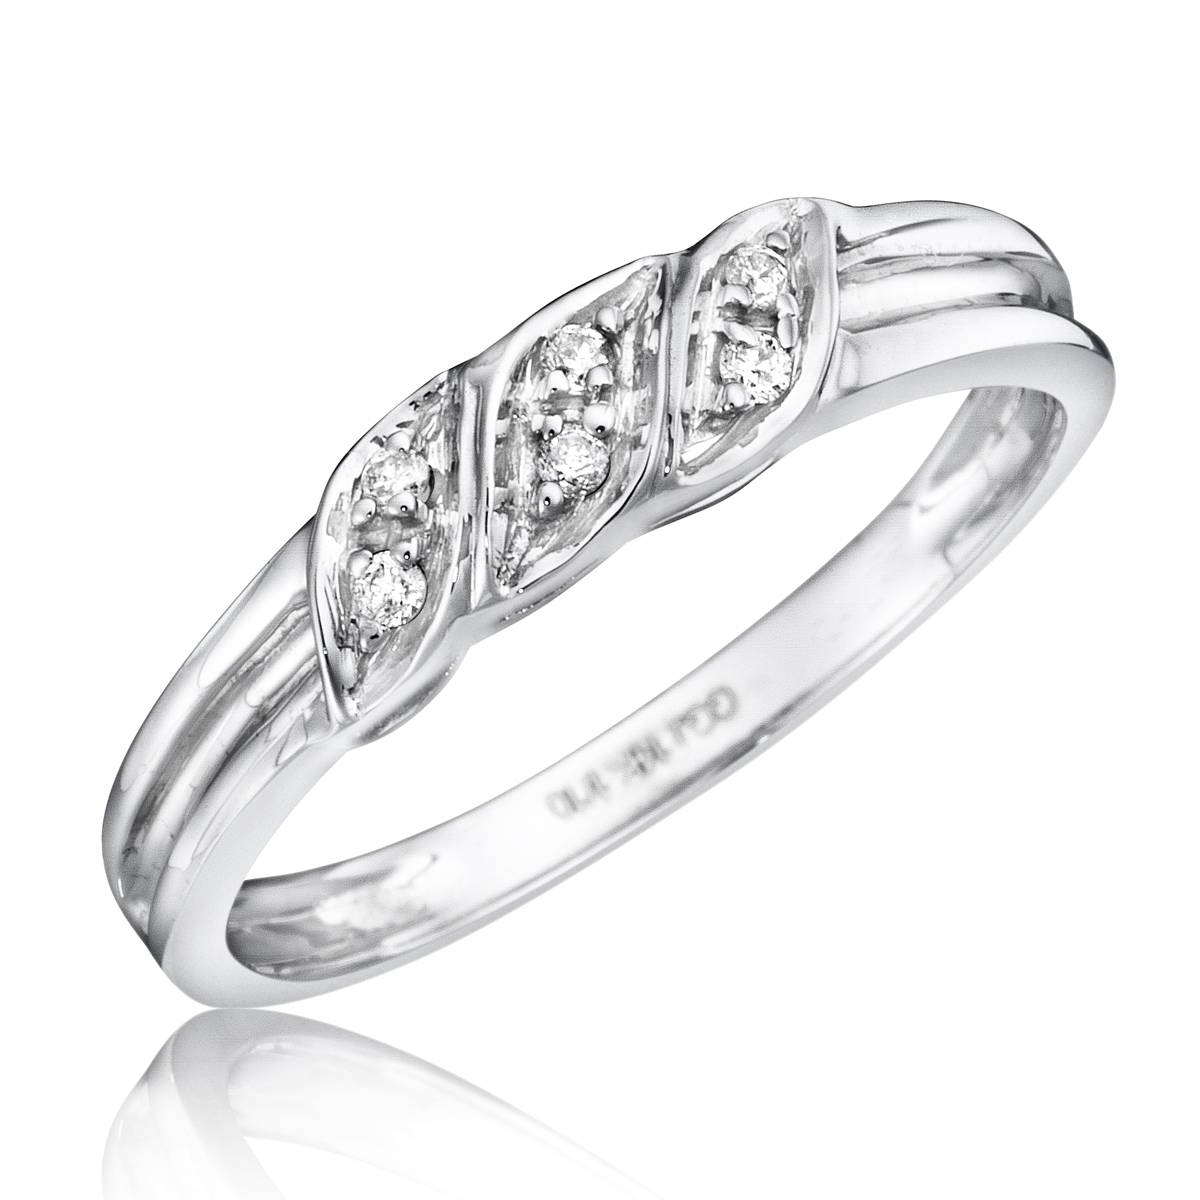 1/15 Carat T.w. Diamond Women's Wedding Ring 10k White Gold Within Womans Wedding Rings (Gallery 11 of 15)